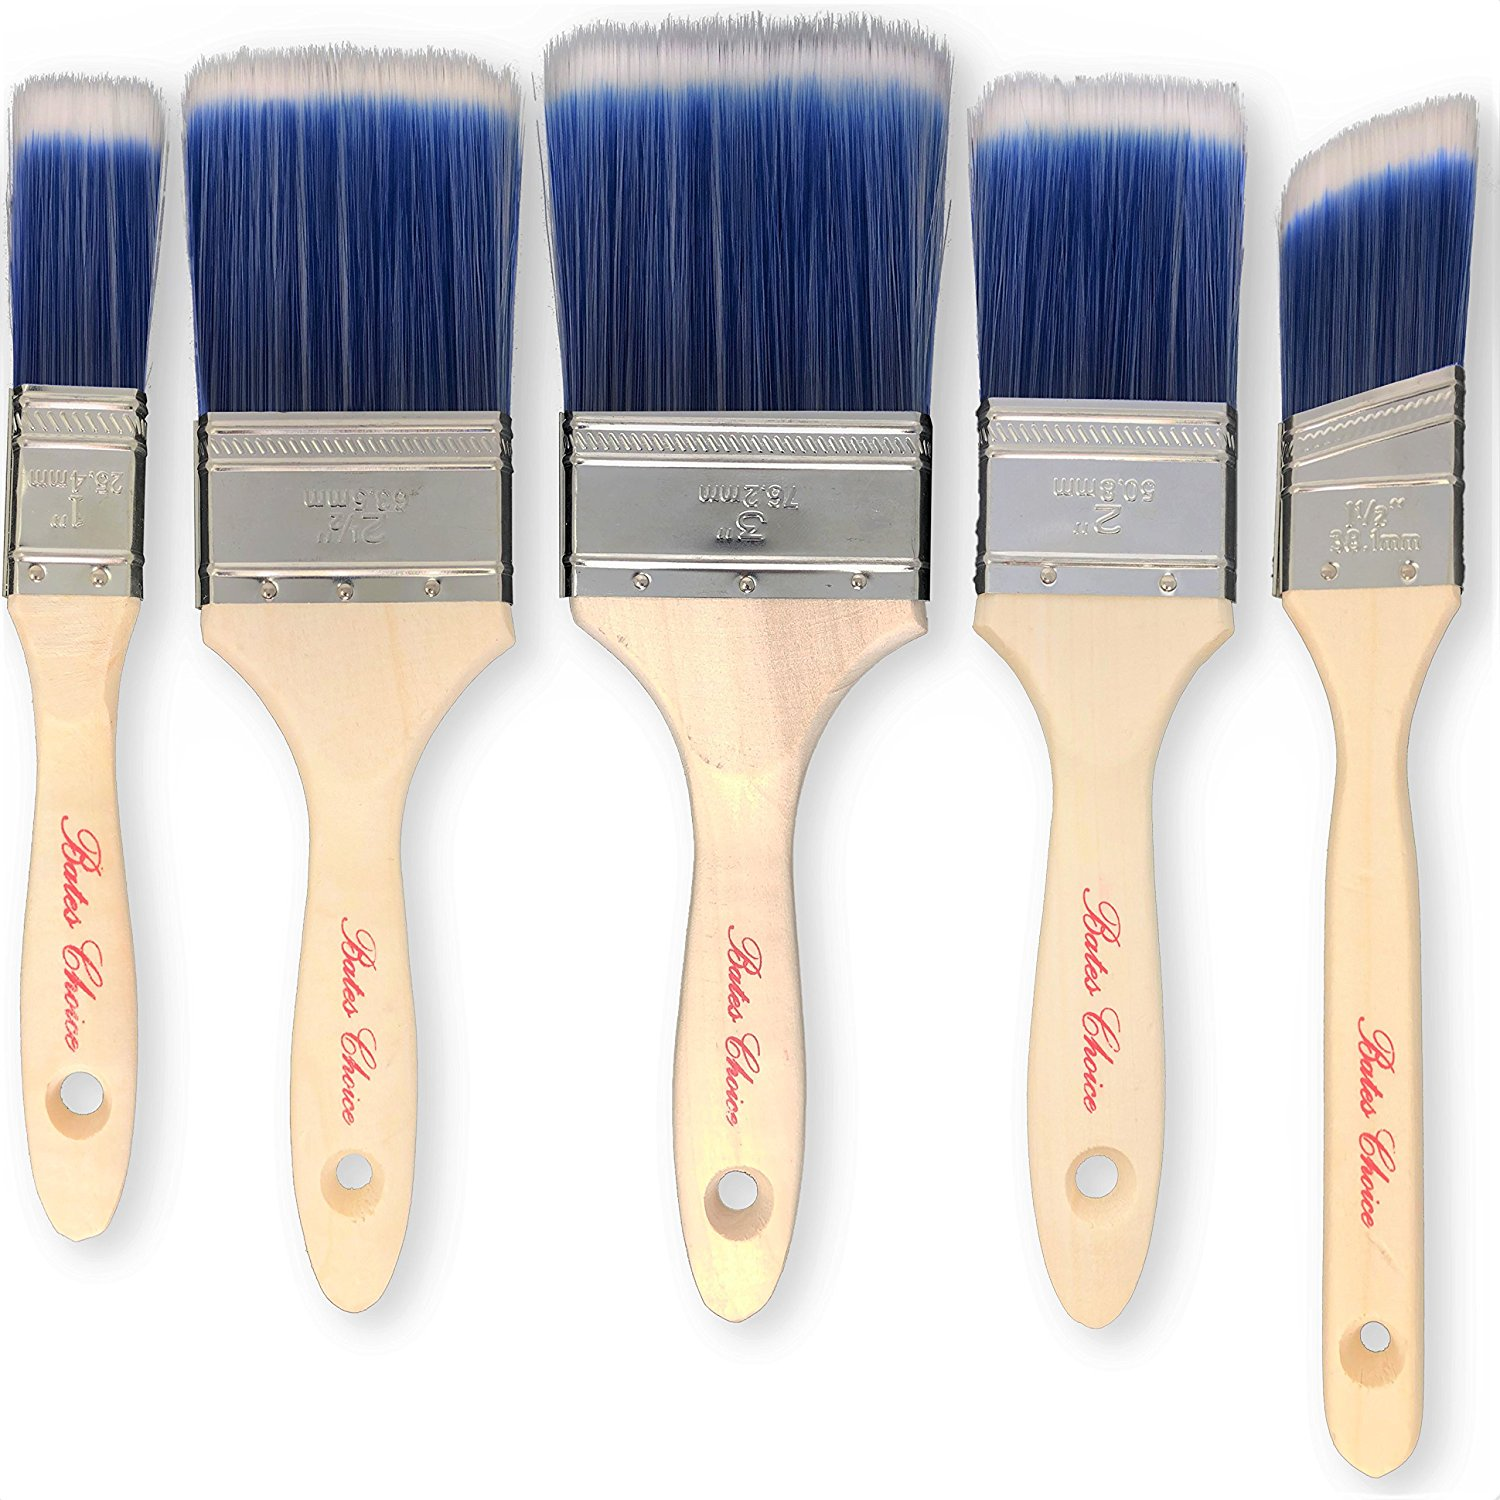 Bates Paint Brushes - 5 Pieces (3, 2.5, 2, 1.5 and 1-Inch), Paint Brushes For Walls, Professional Wall Brush Set, House Paint Brush, Trim Paint Brush, Sash Paint Brush, Premium Paintbrush, Stain Brush